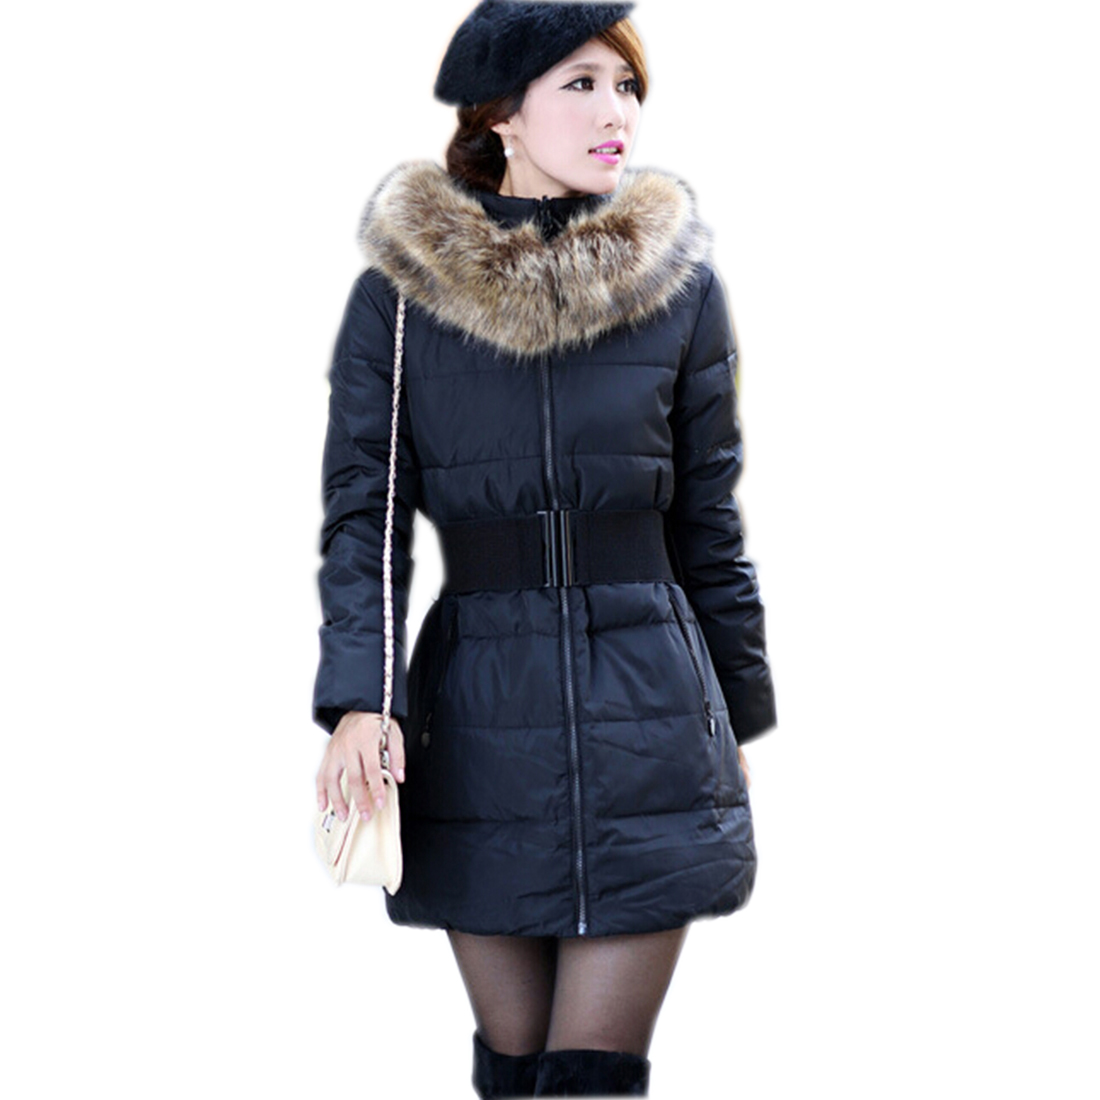 Fashion 2017 Autumn Winter Women Long Parka Female Warm Jacket Coat Slim Hooded Fur Collar Outwear Overcoats With Belt new fashion winter jacket women fur collar hooded jacket warm thick coat large size slim for women outwear parka women g2786